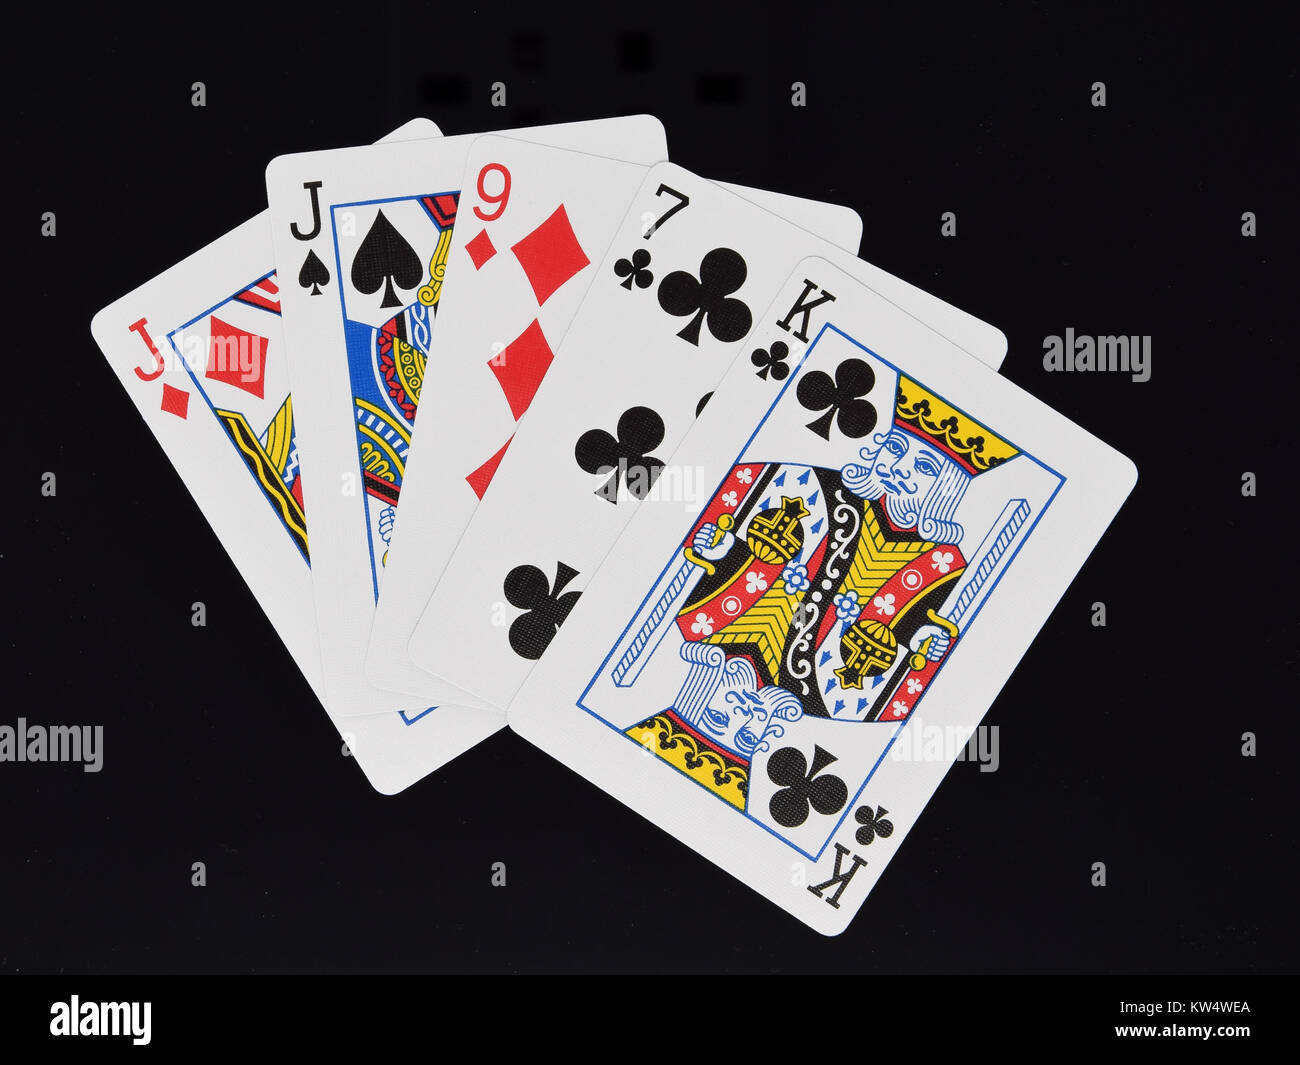 One Pair hand in poker card game - Stock Image